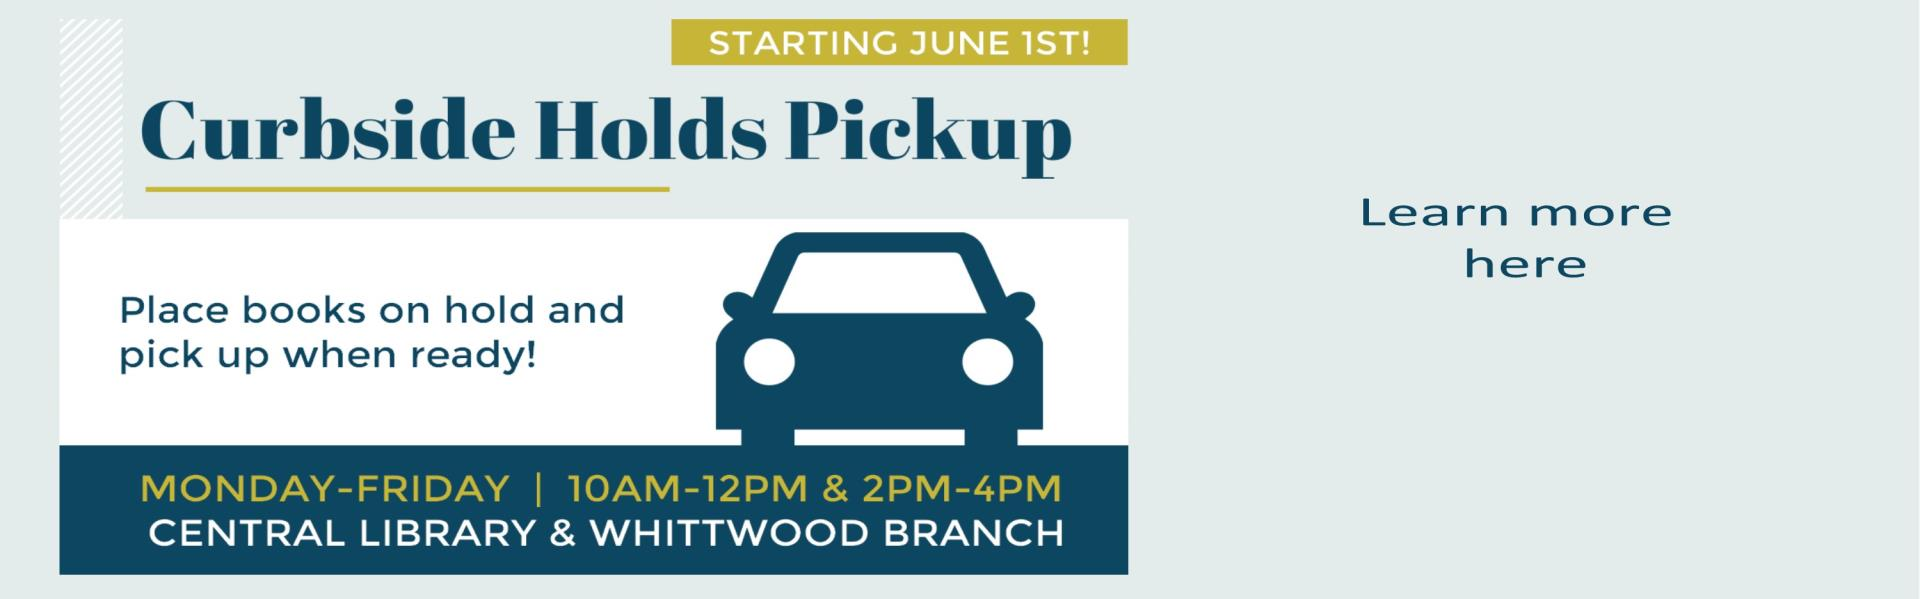 Curbside Holds Pick-Up Services, Place books on hold with your library card and pick up when ready! Monday - Friday 10am-12pm & 2pm - 4pm beginning June 1st learn more here image of a car